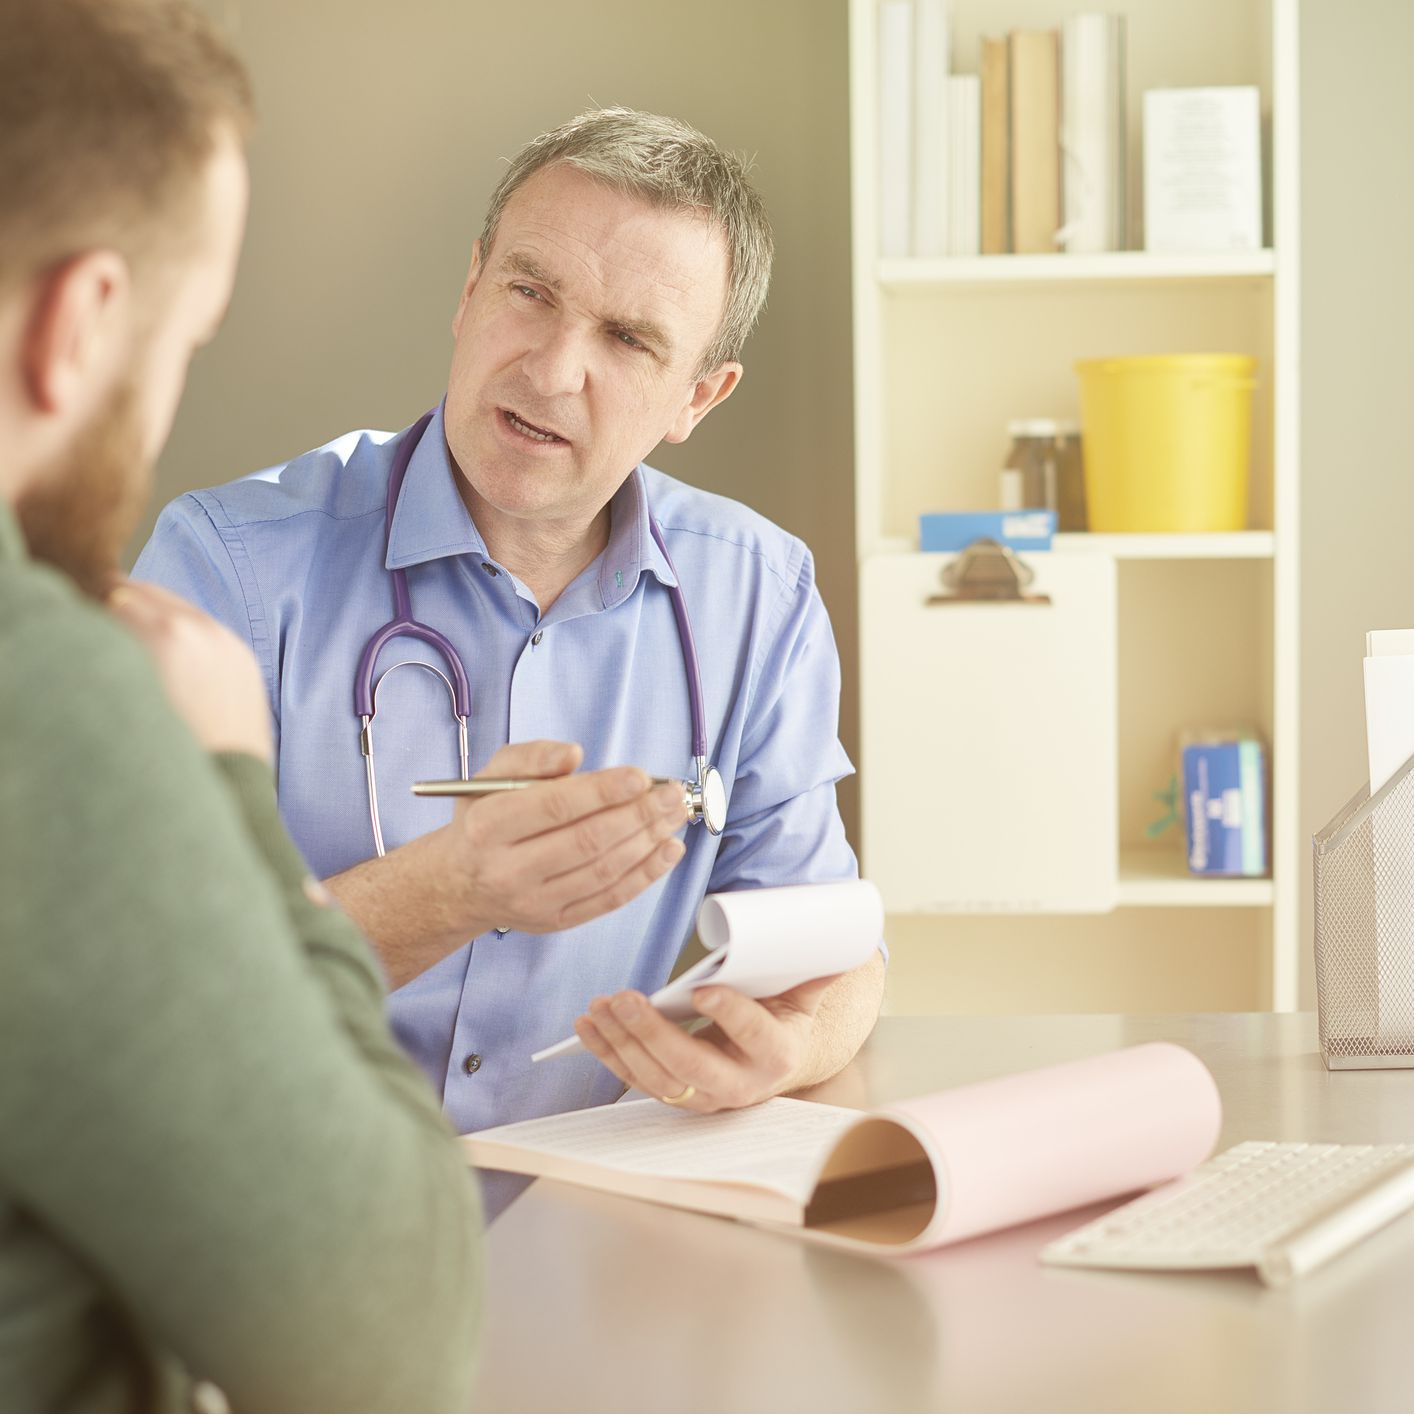 Types of Borderline Personality Disorder Medications